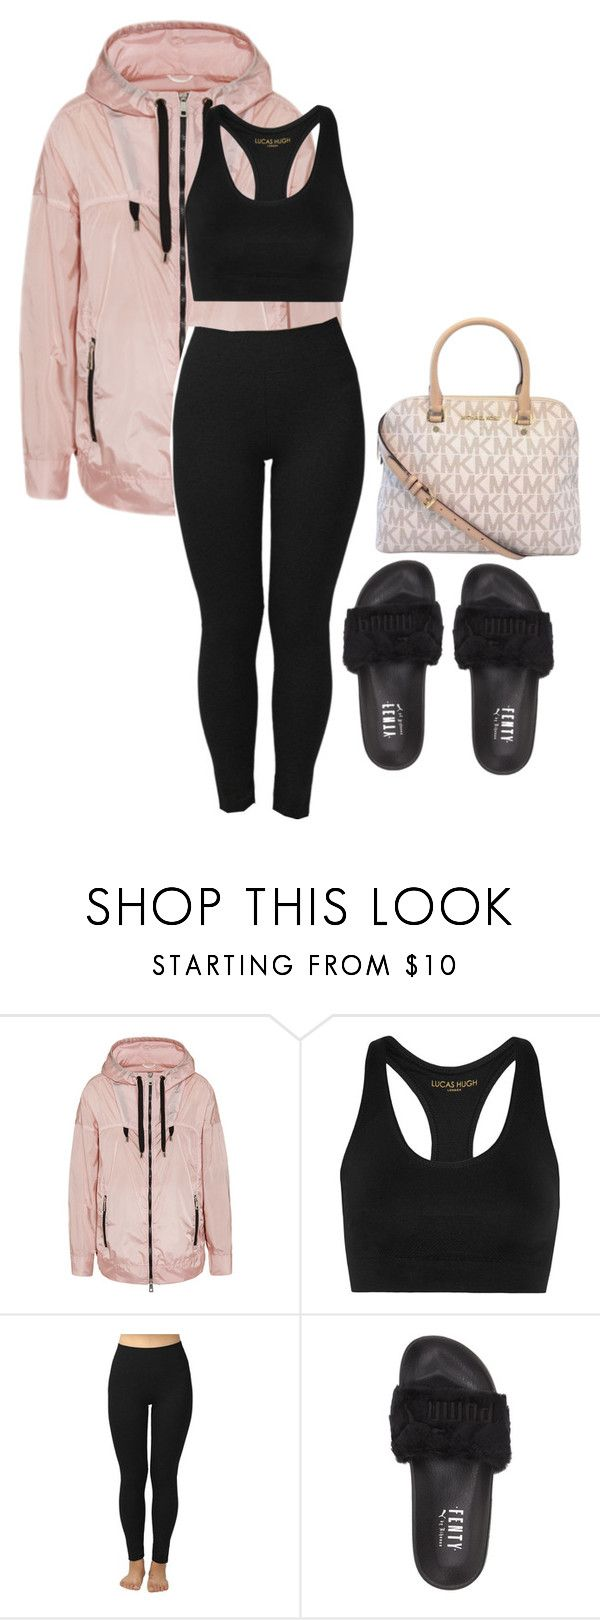 """""""Untitled #523"""" by tdgaaf ❤ liked on Polyvore featuring FAY, Lucas Hugh, Puma and Michael Kors"""